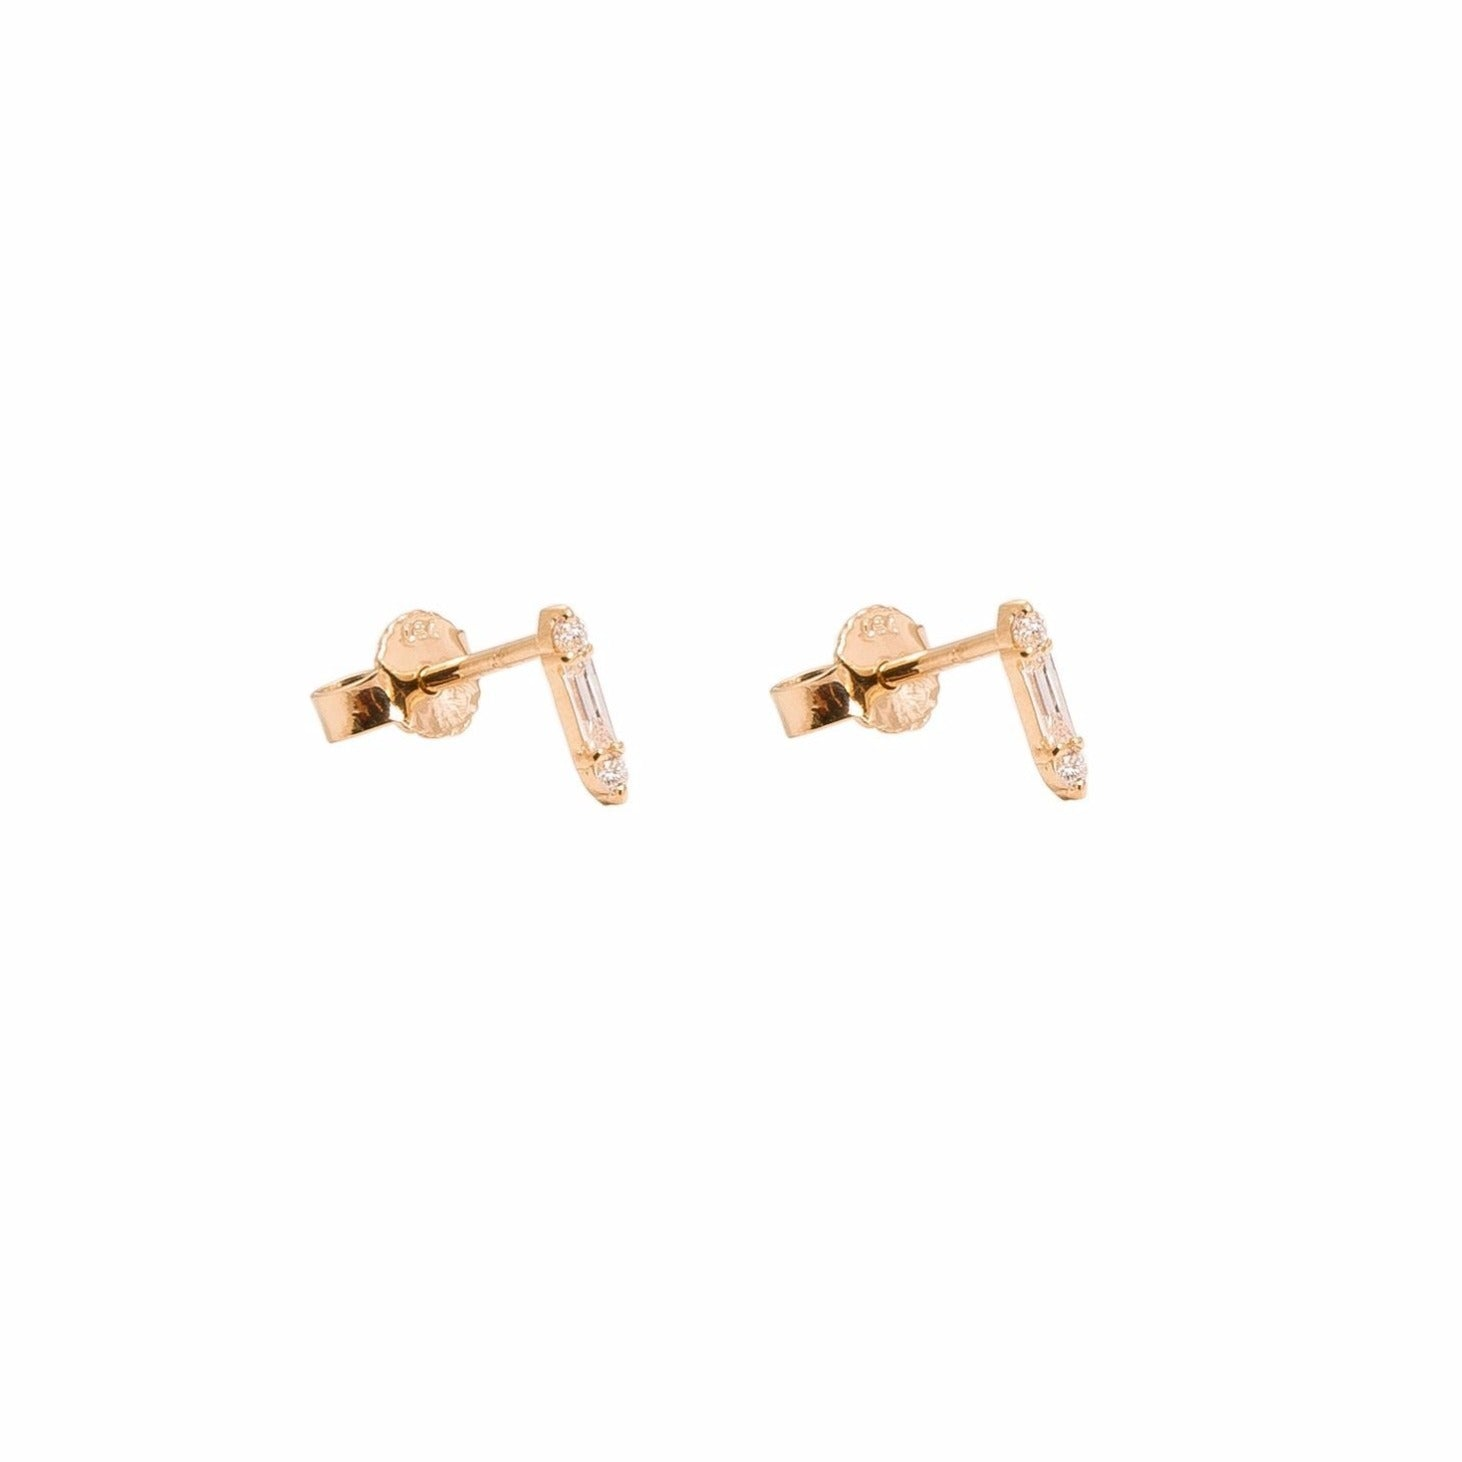 18 karat gold diamond baguette earring studs